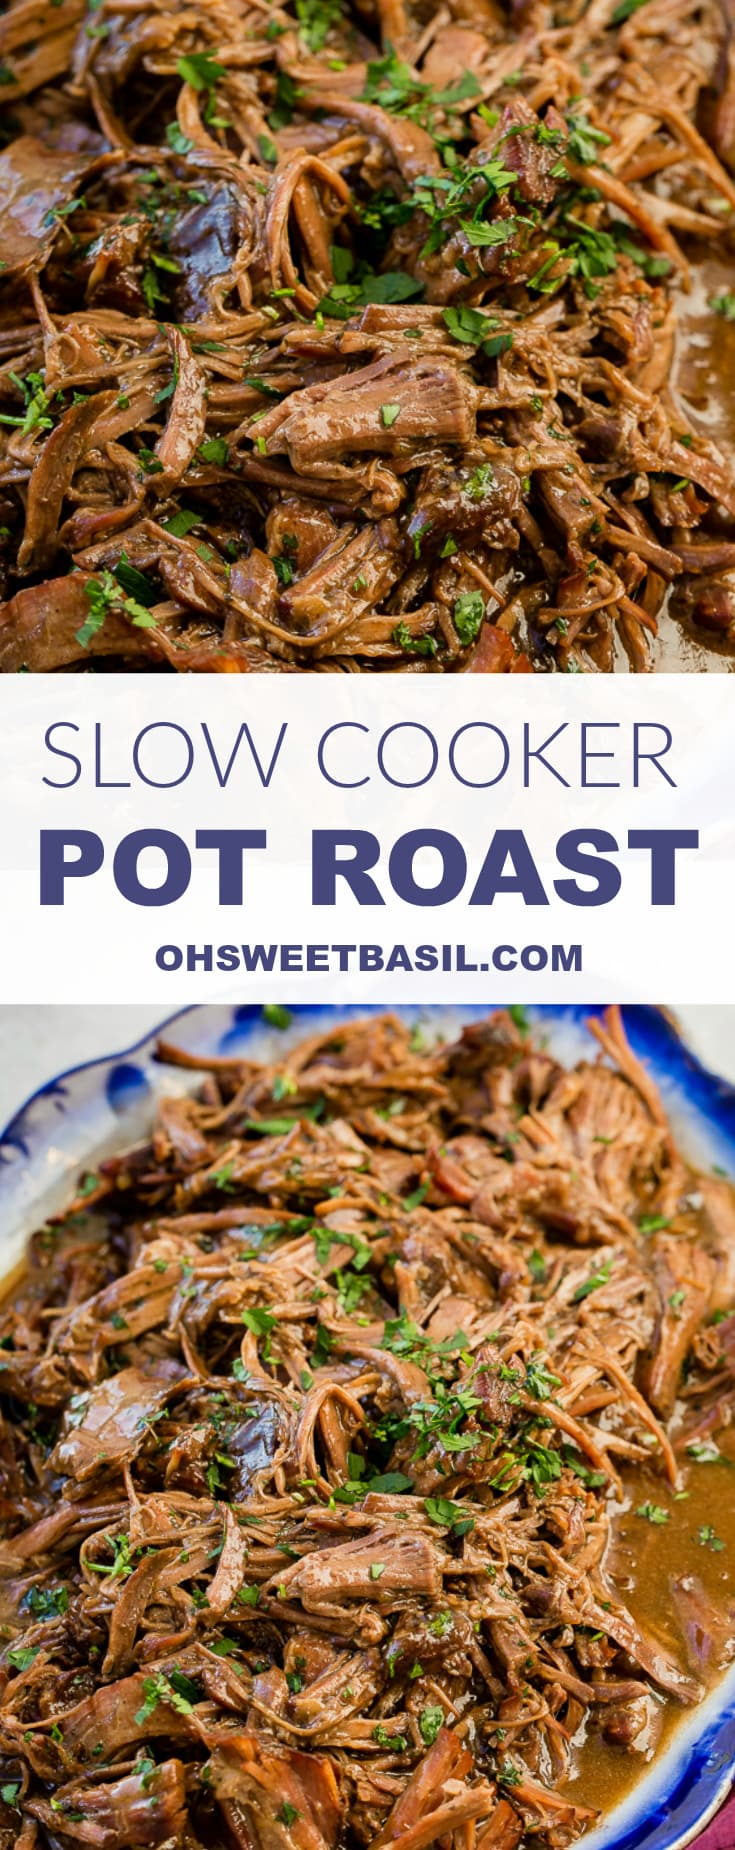 This is our new favorite slow cooker pot roast recipe and it's only 3 ingredients! I cannot even believe how perfect and juicy it was!!